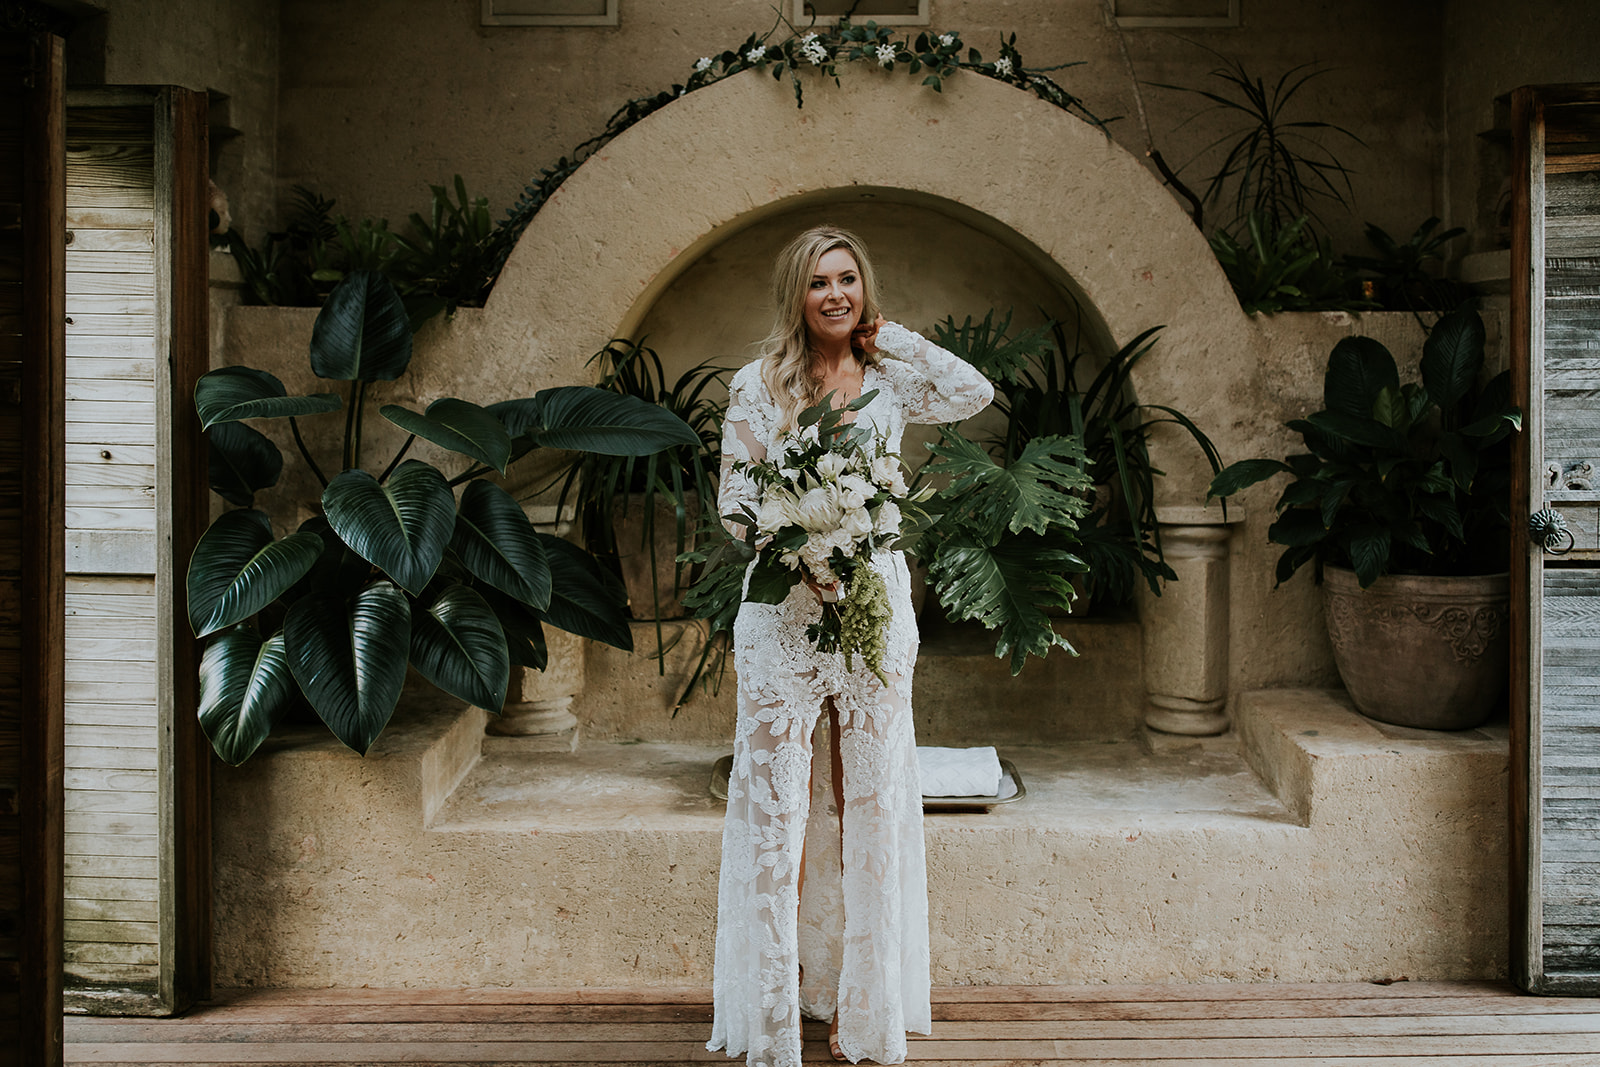 Bride standing in front of rustic alter with a bouquet of flowers.